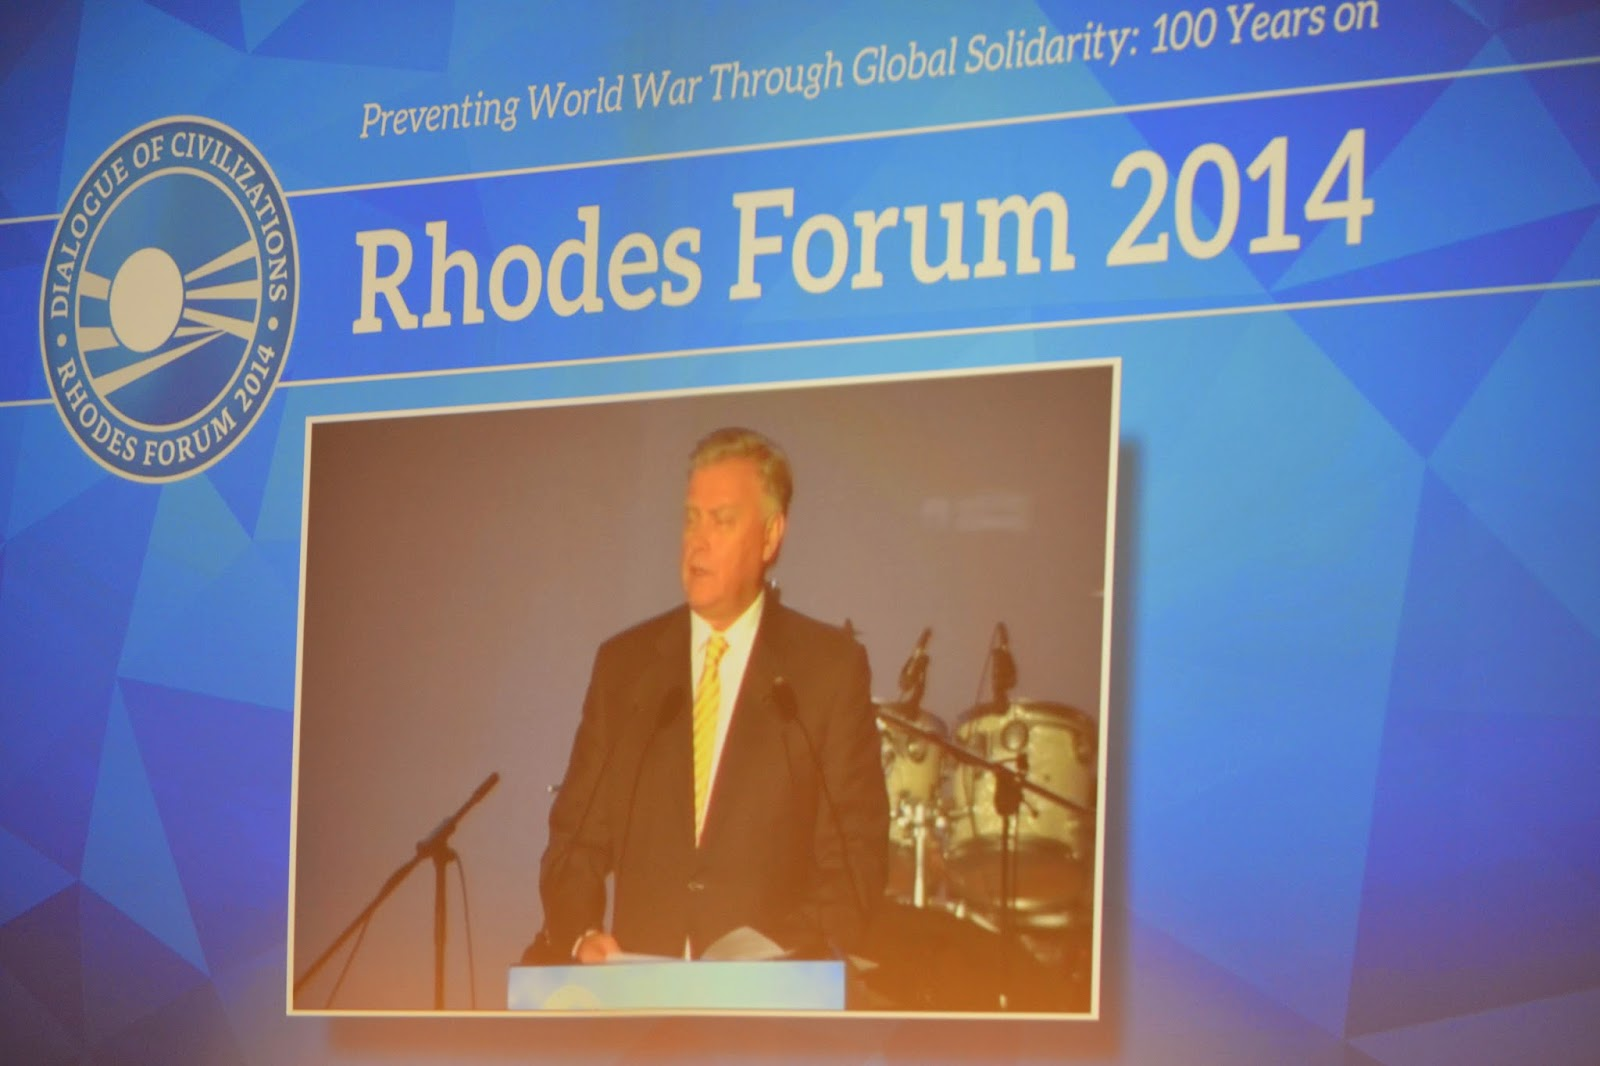 Works have begun on 12th Rhodes Forum – Dialogue of Civilizations